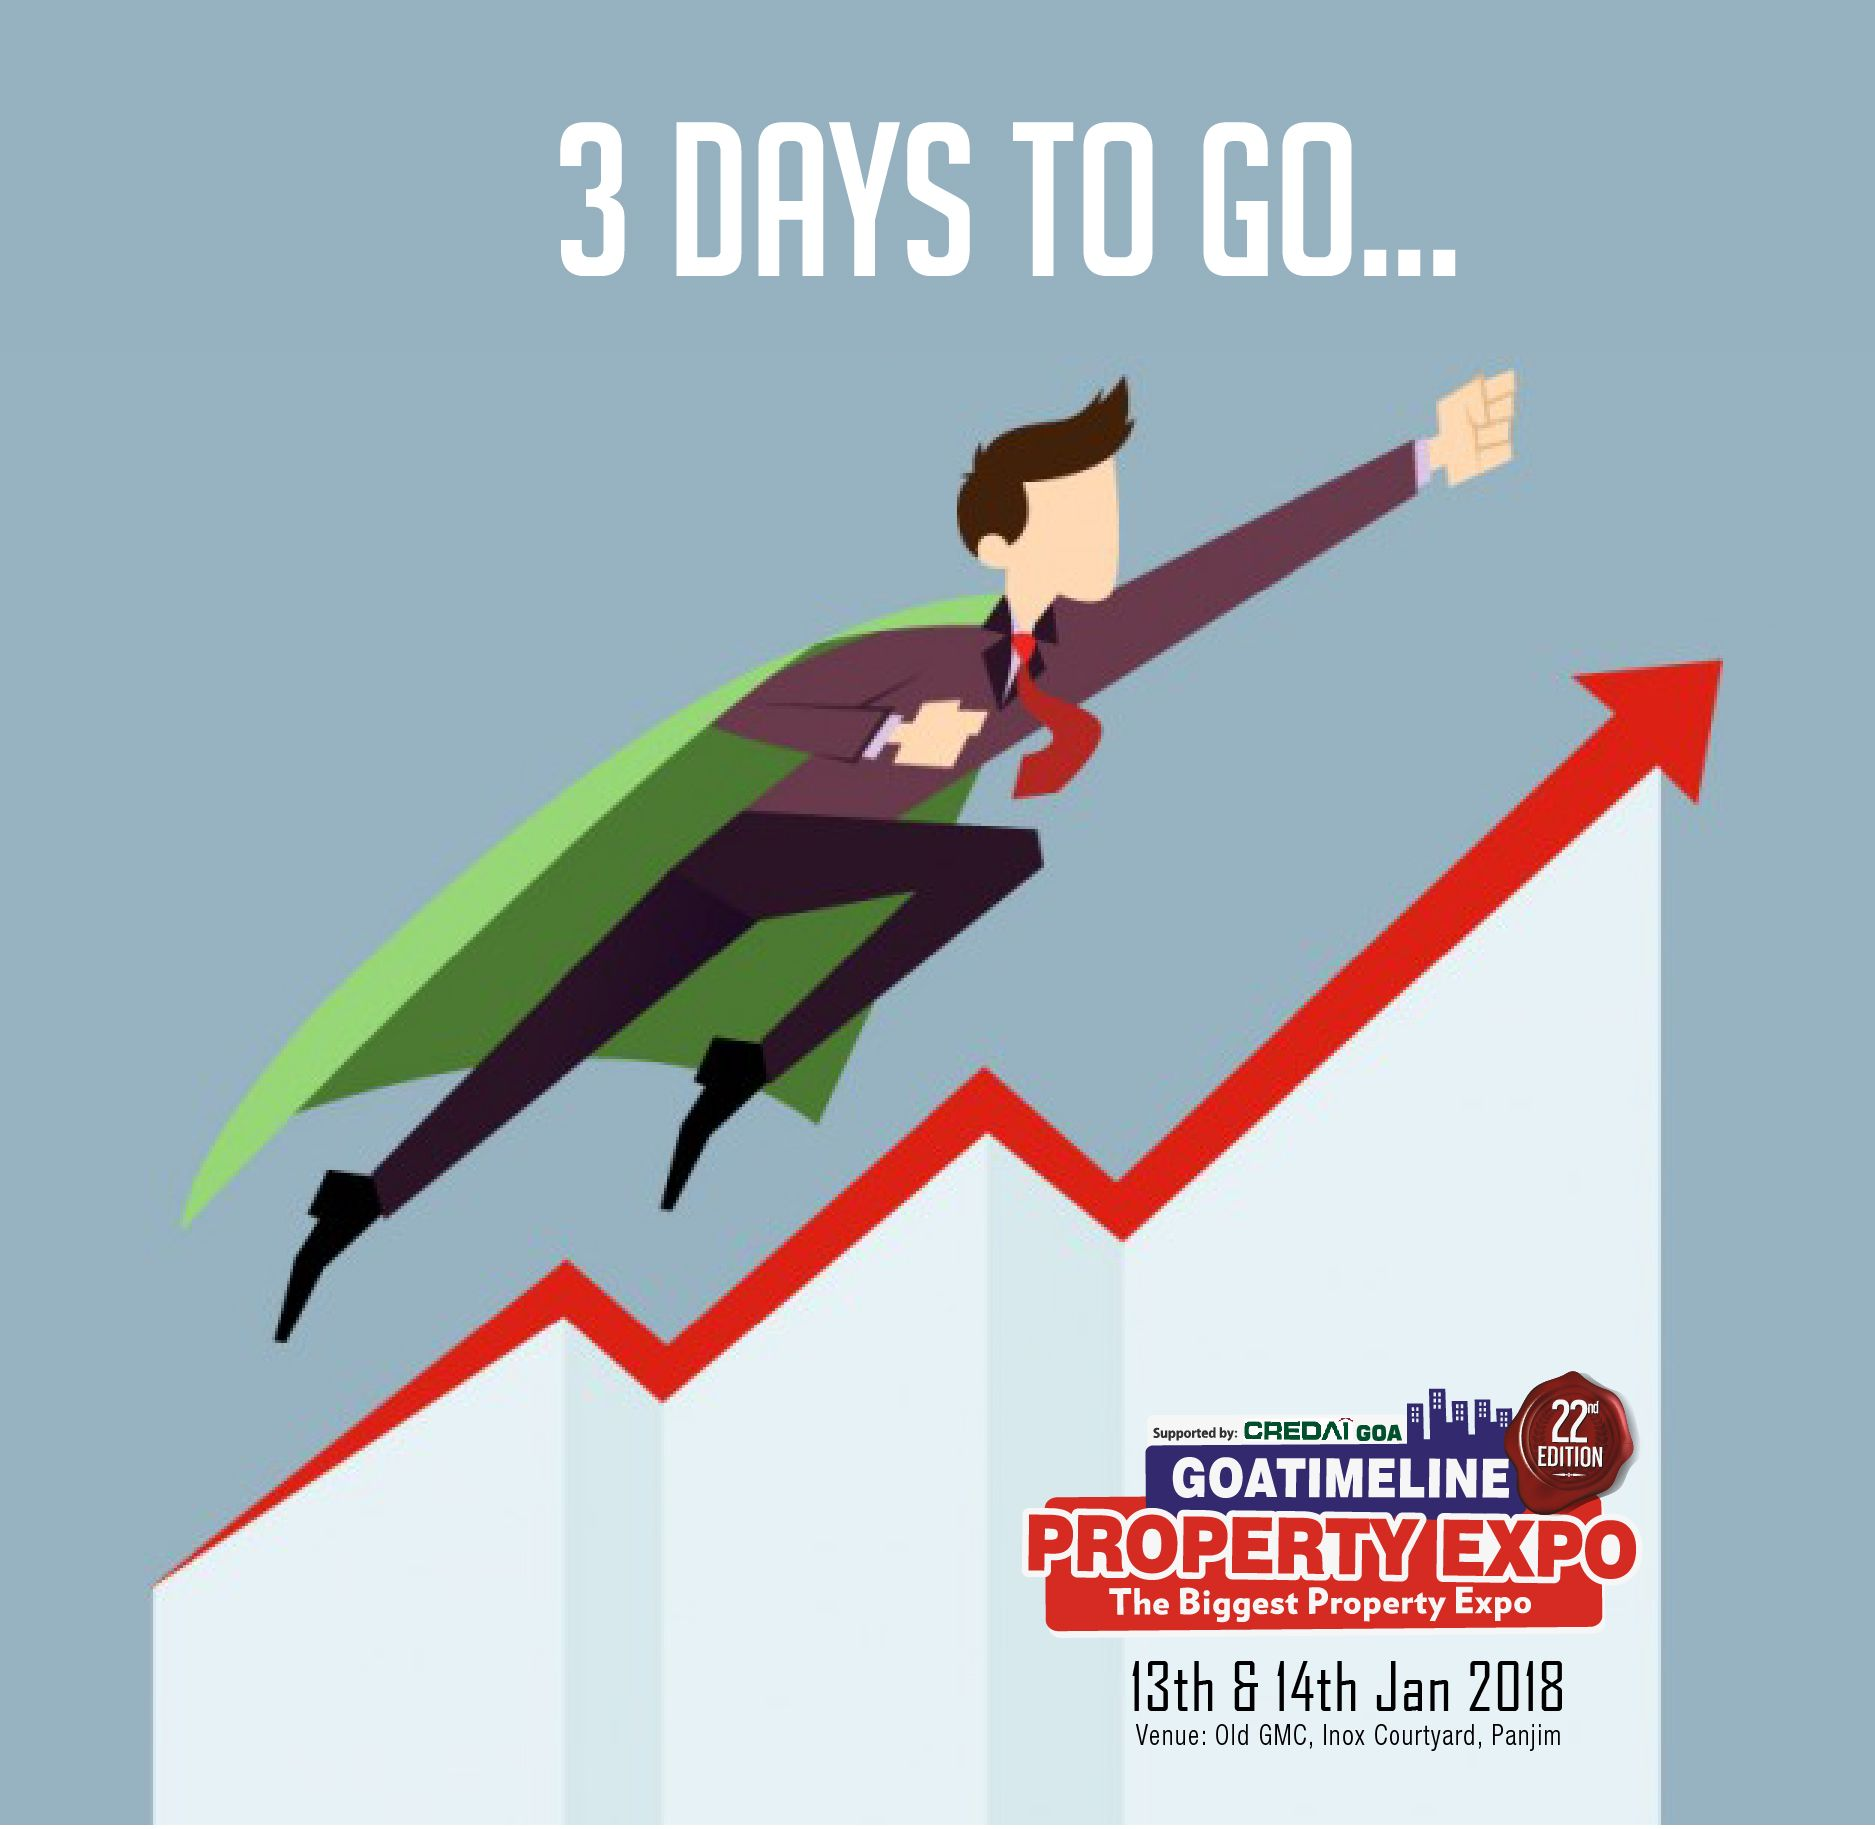 3 Days To Go Brace Yourself And Start Your New Year With Great Fortune The Most Highly Rated Property Expo Is Ready To Furnish Your Requests For Properties H